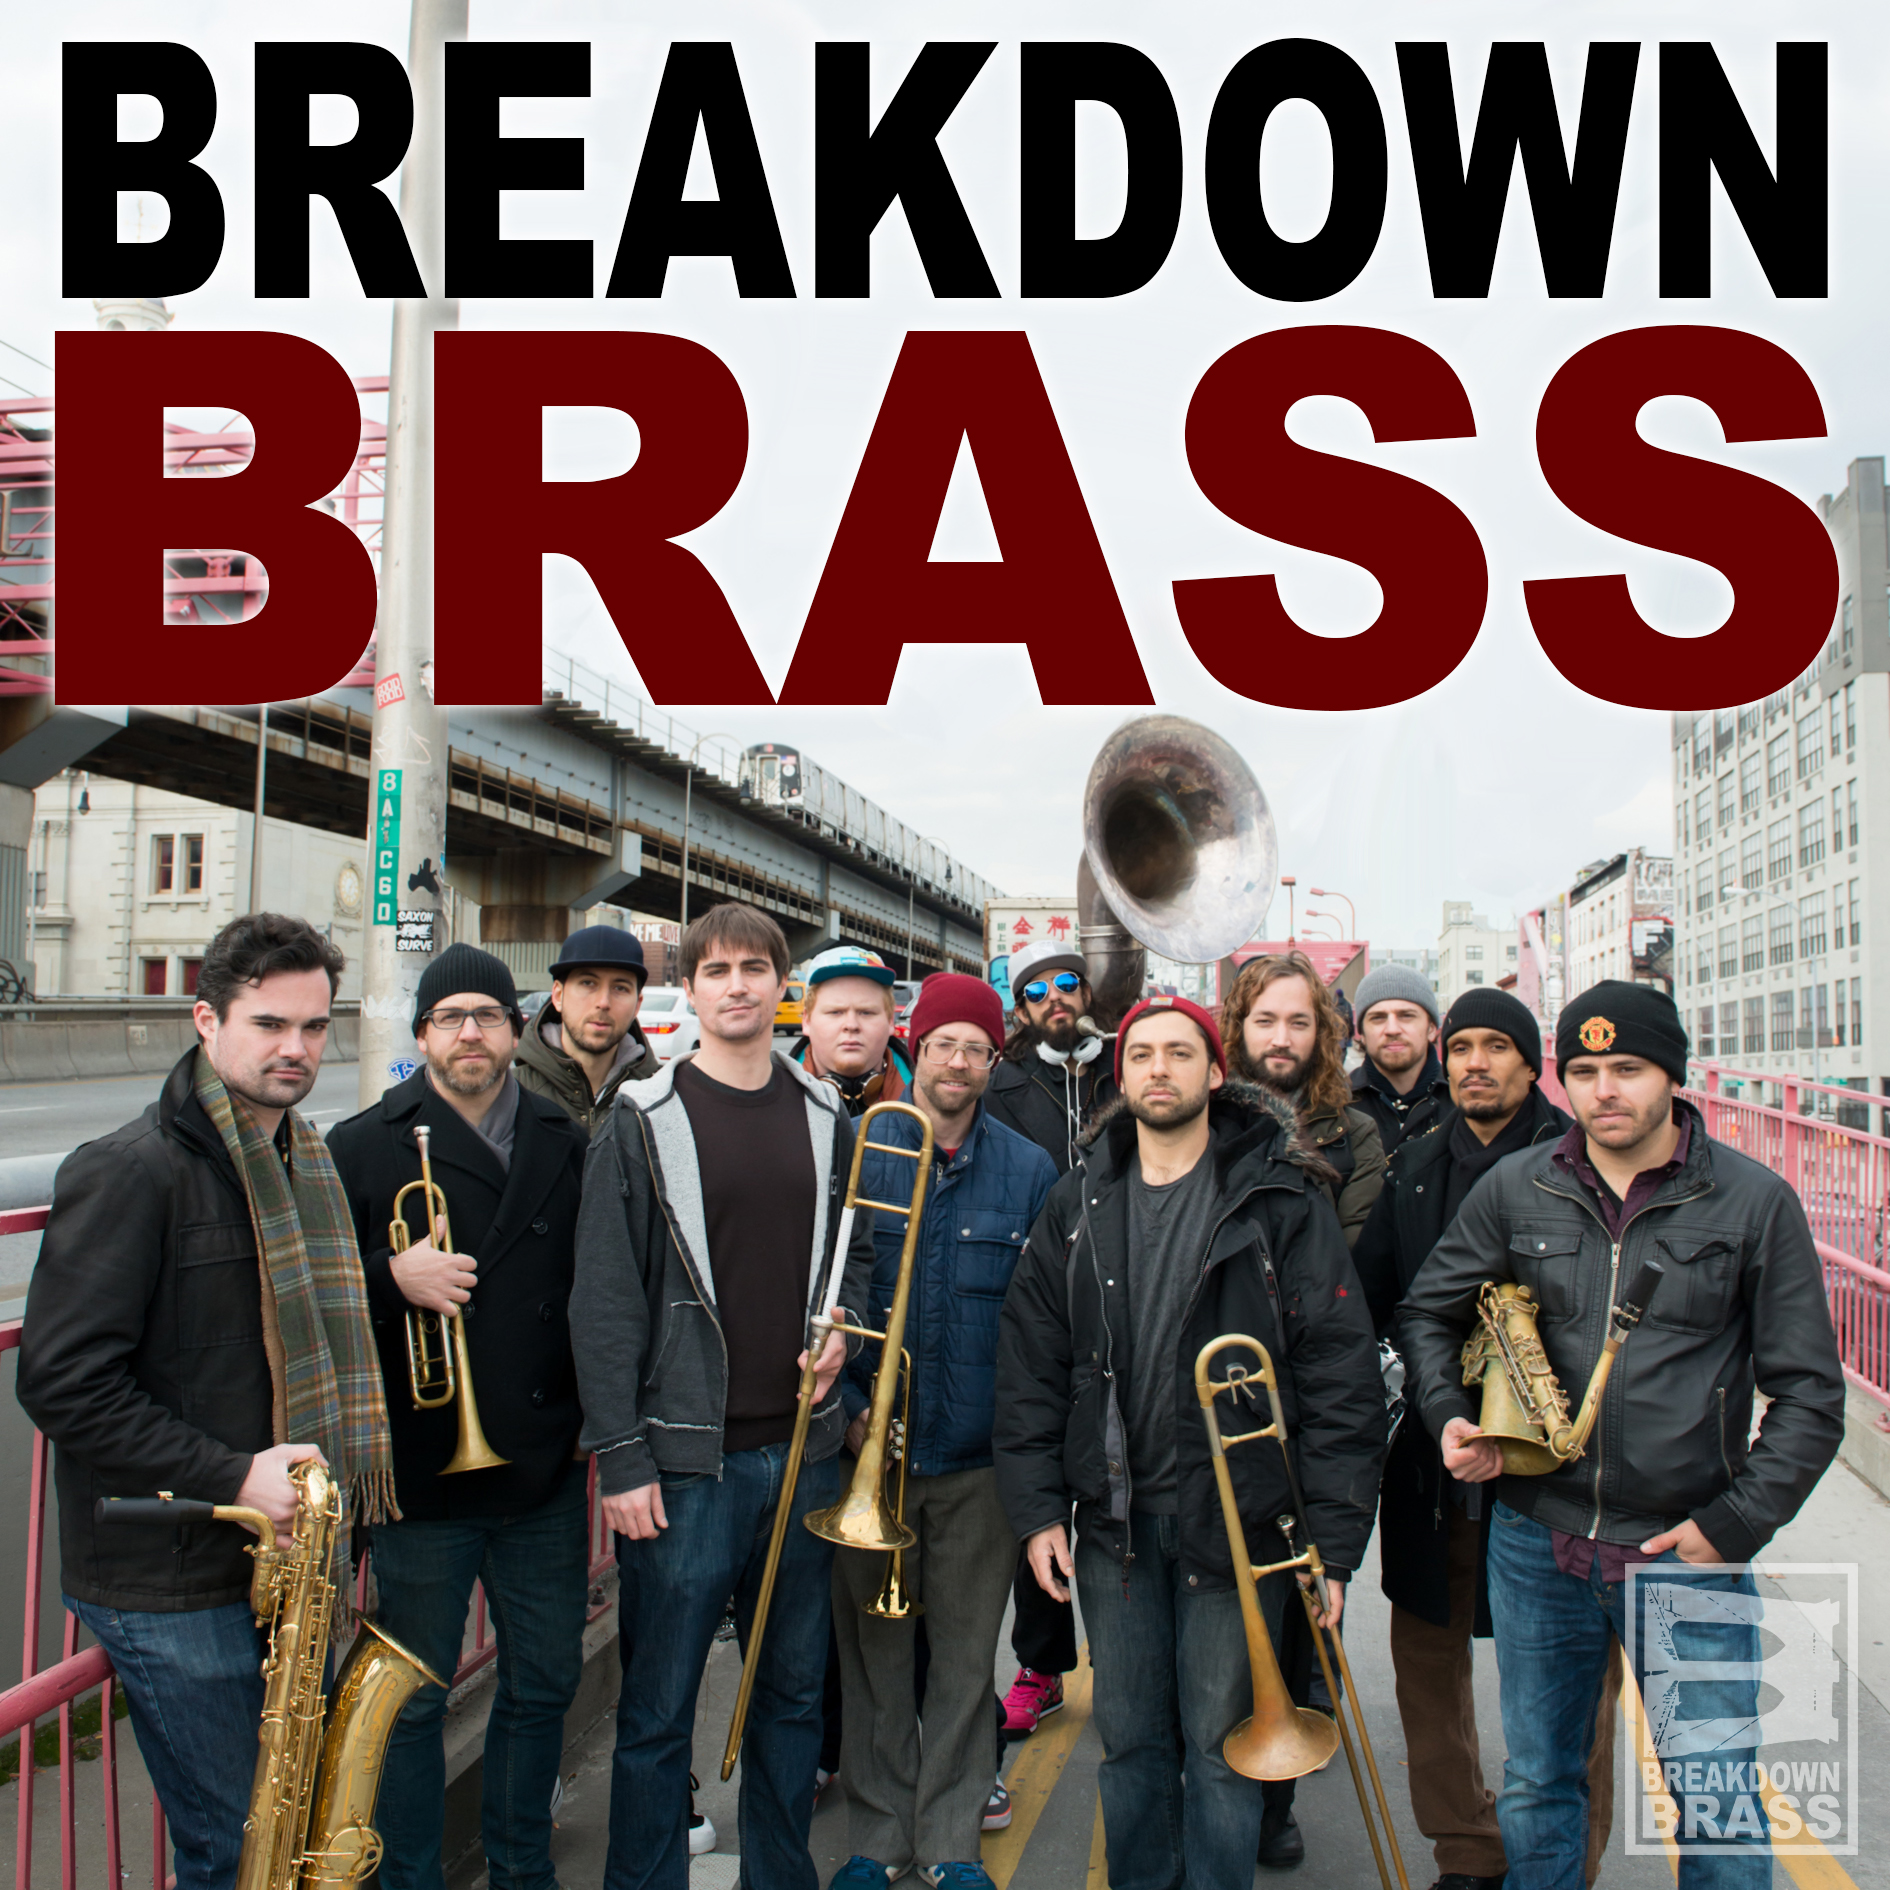 Breakdown Brass Press Shot 1 square with text no logo